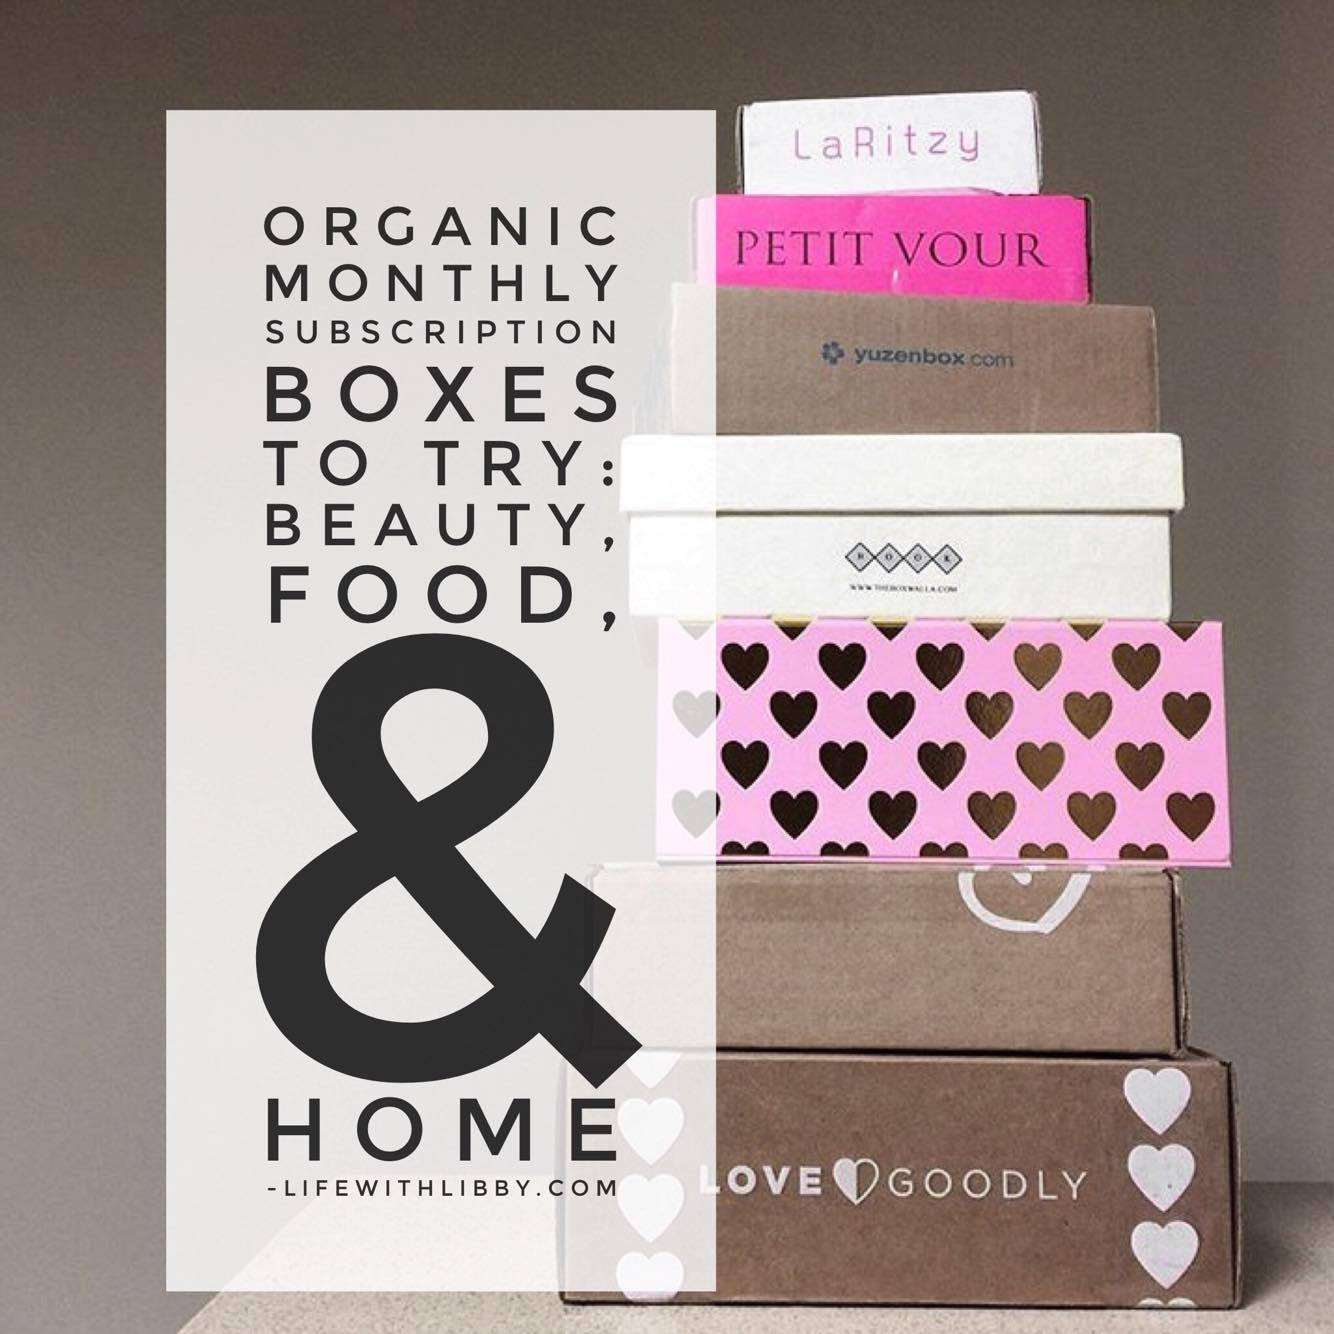 Organic Subscription Boxes To Try-Beauty, Food & More – Life